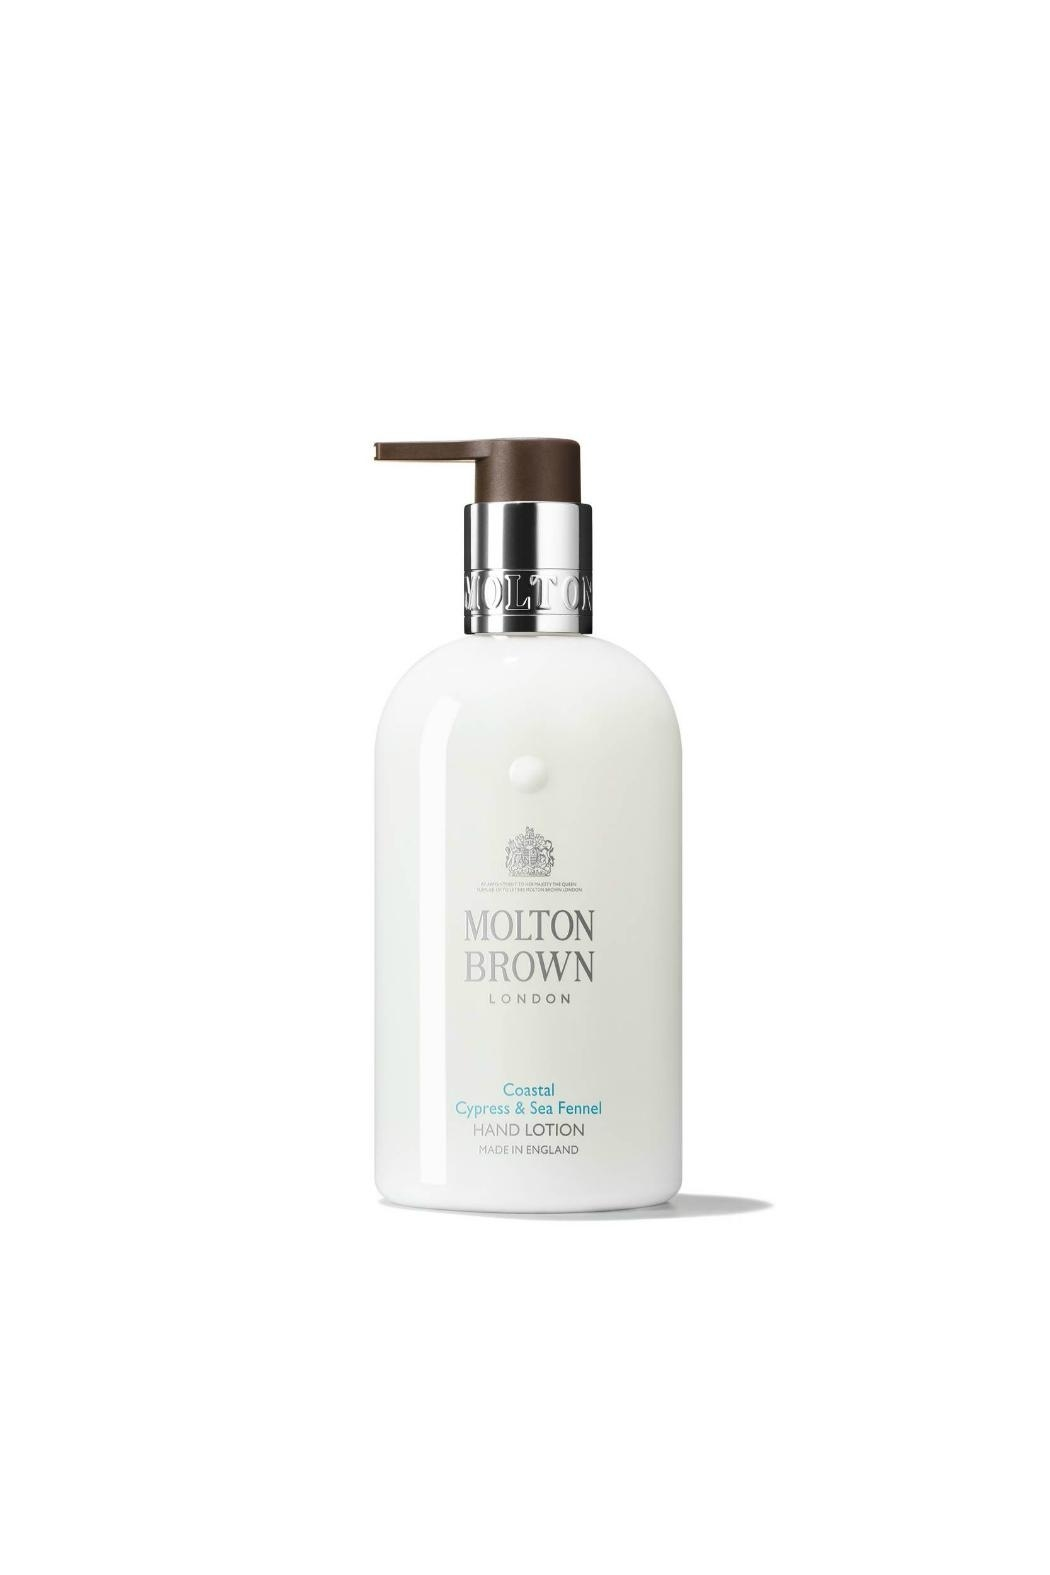 Molton Brown Coastal Cypress & Sea Fennel Hand Lotion - Main Image